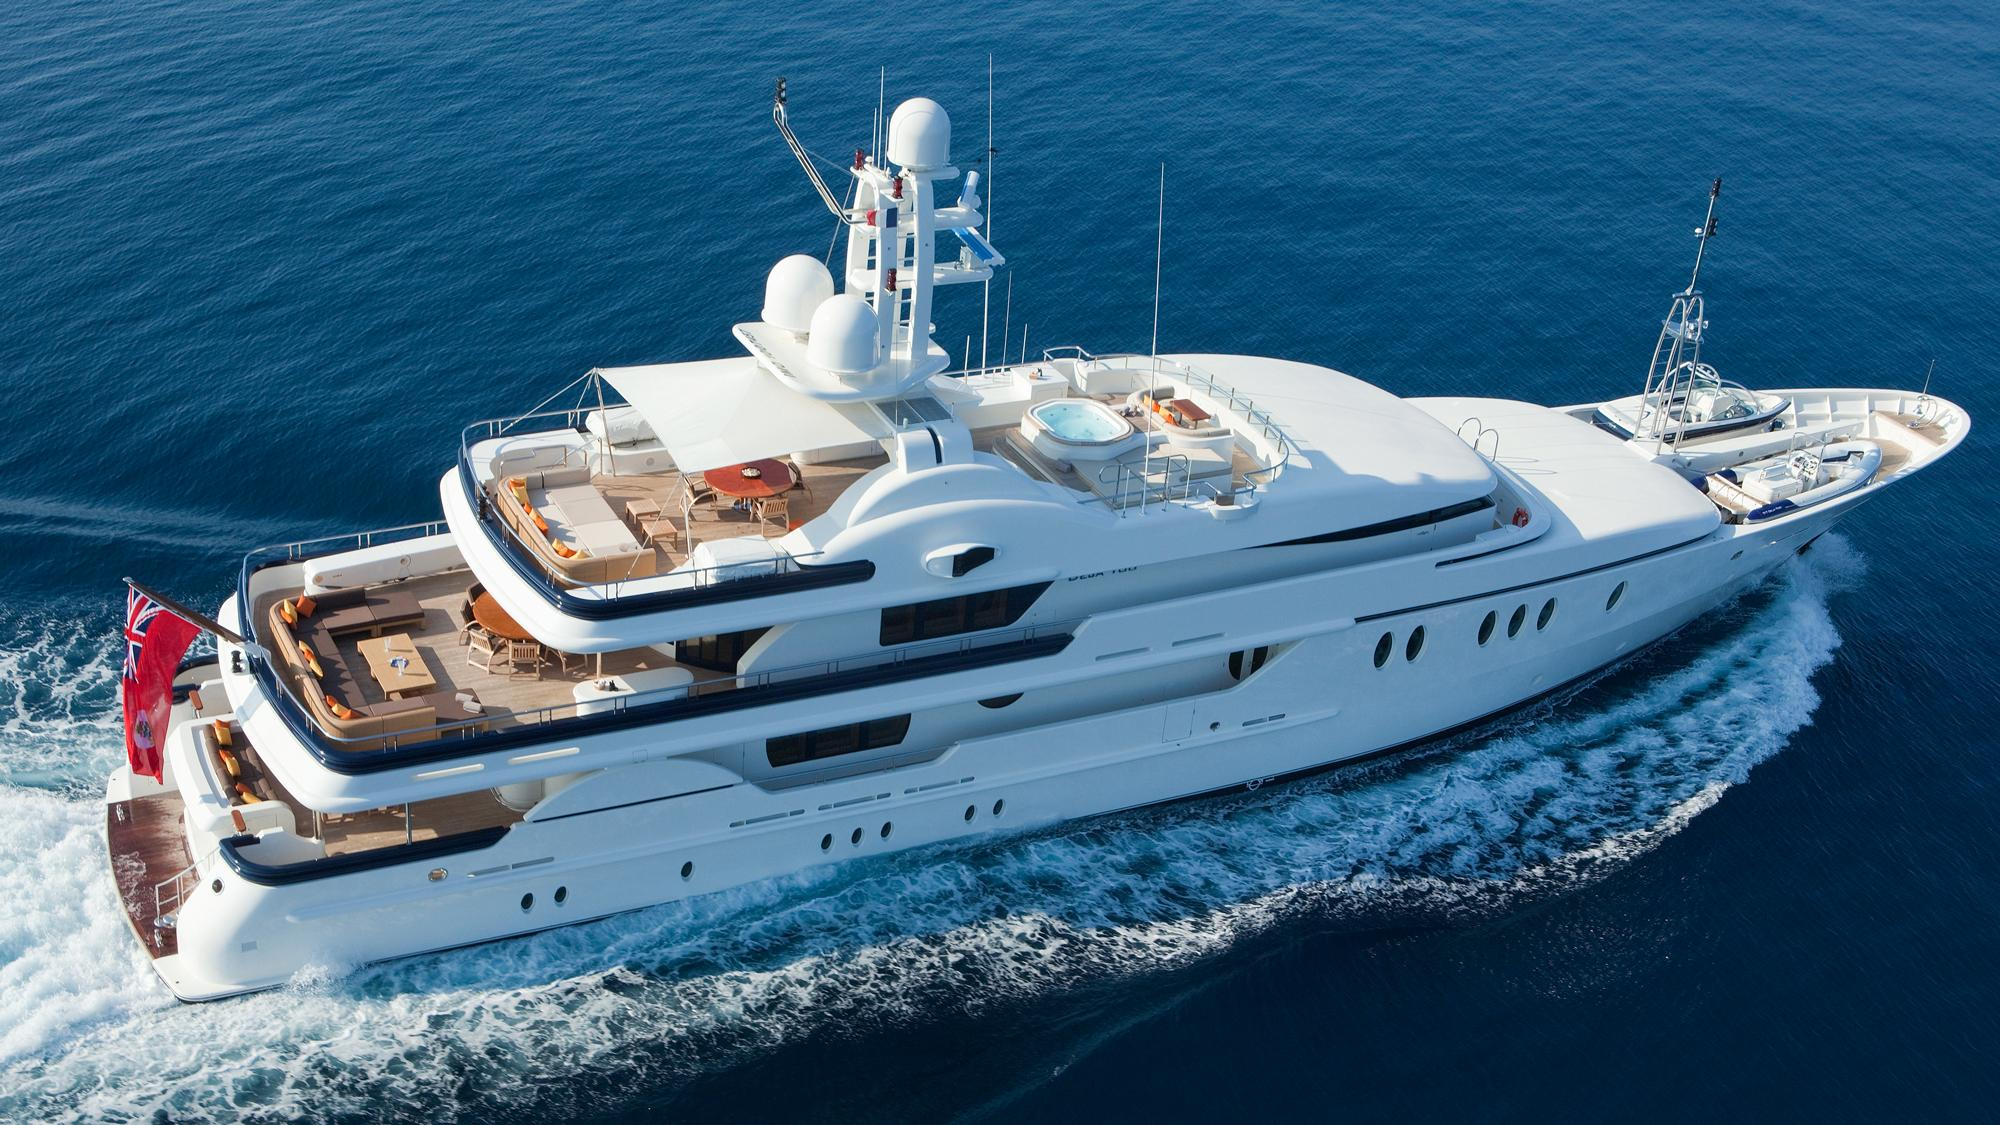 DEJA TOO yacht for charter (Amels, 52m, 2003)